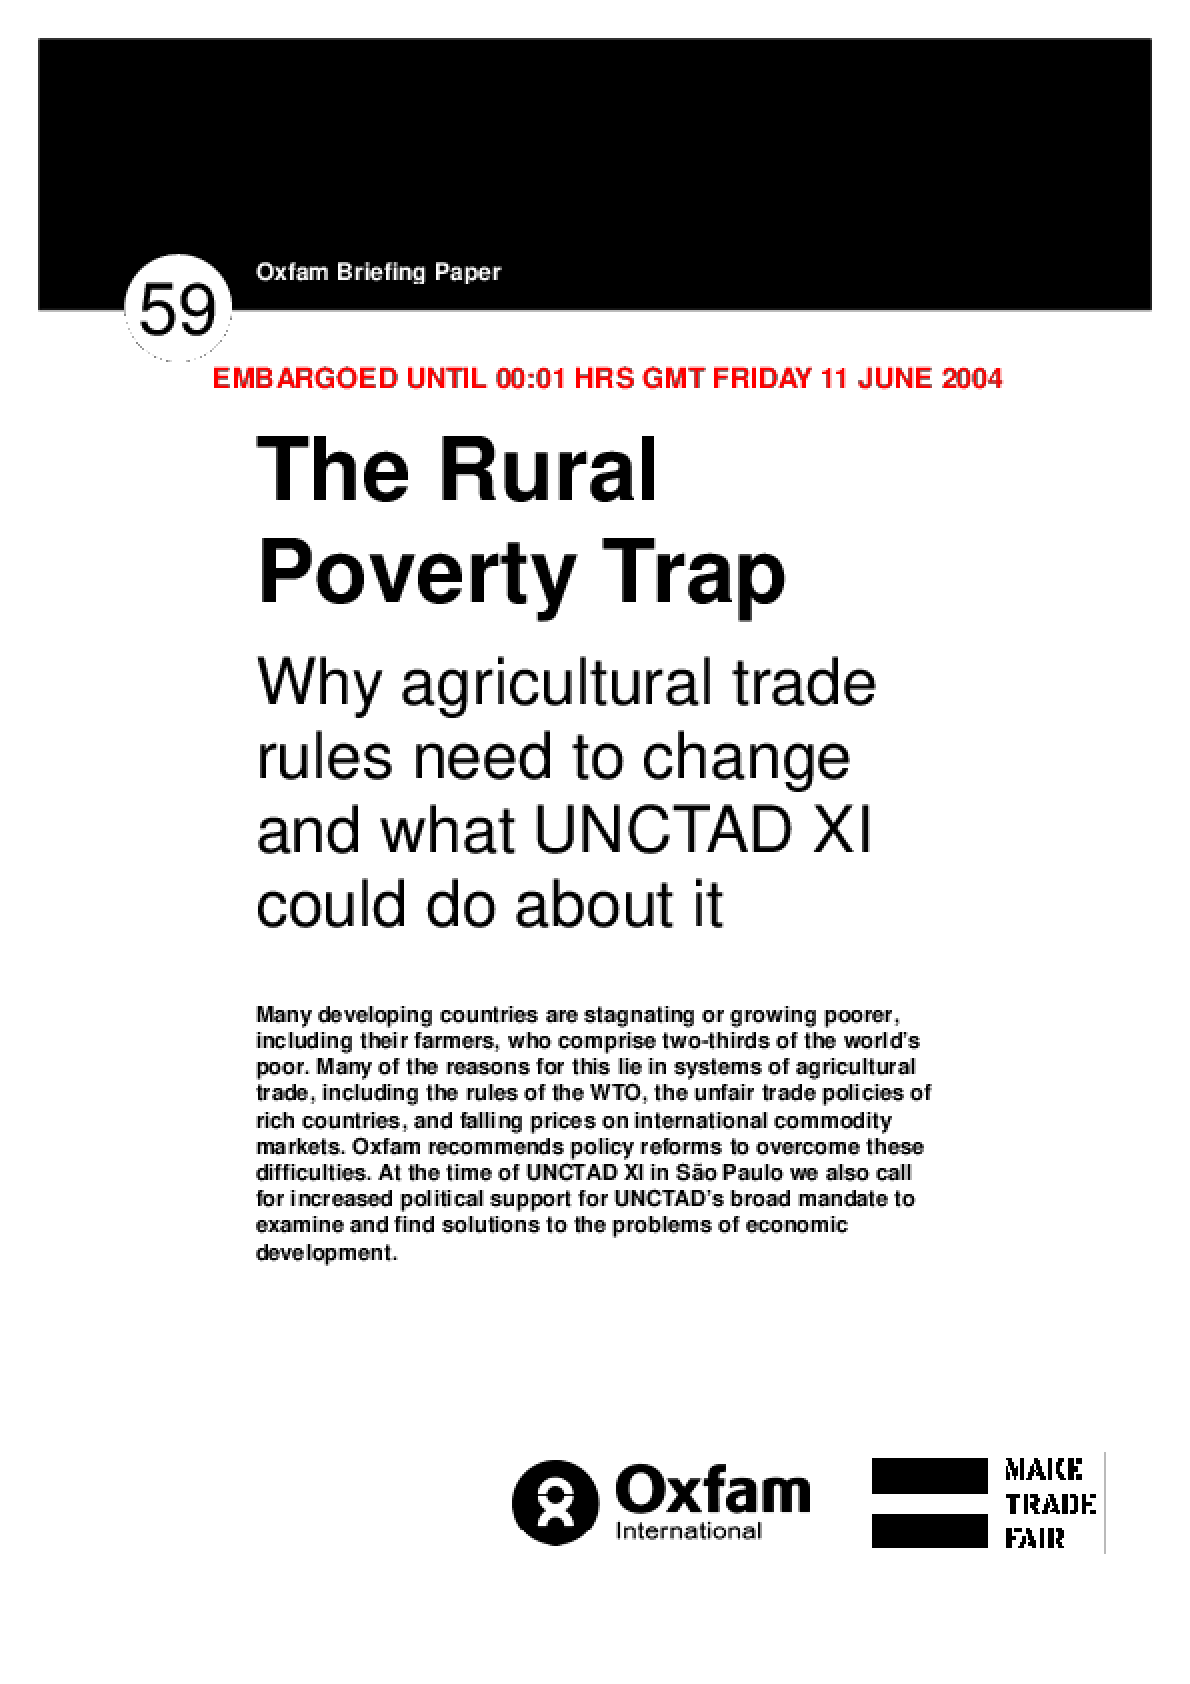 The Rural Poverty Trap: Why agricultural trade rules need to change and what UNCTAD XI could do about it